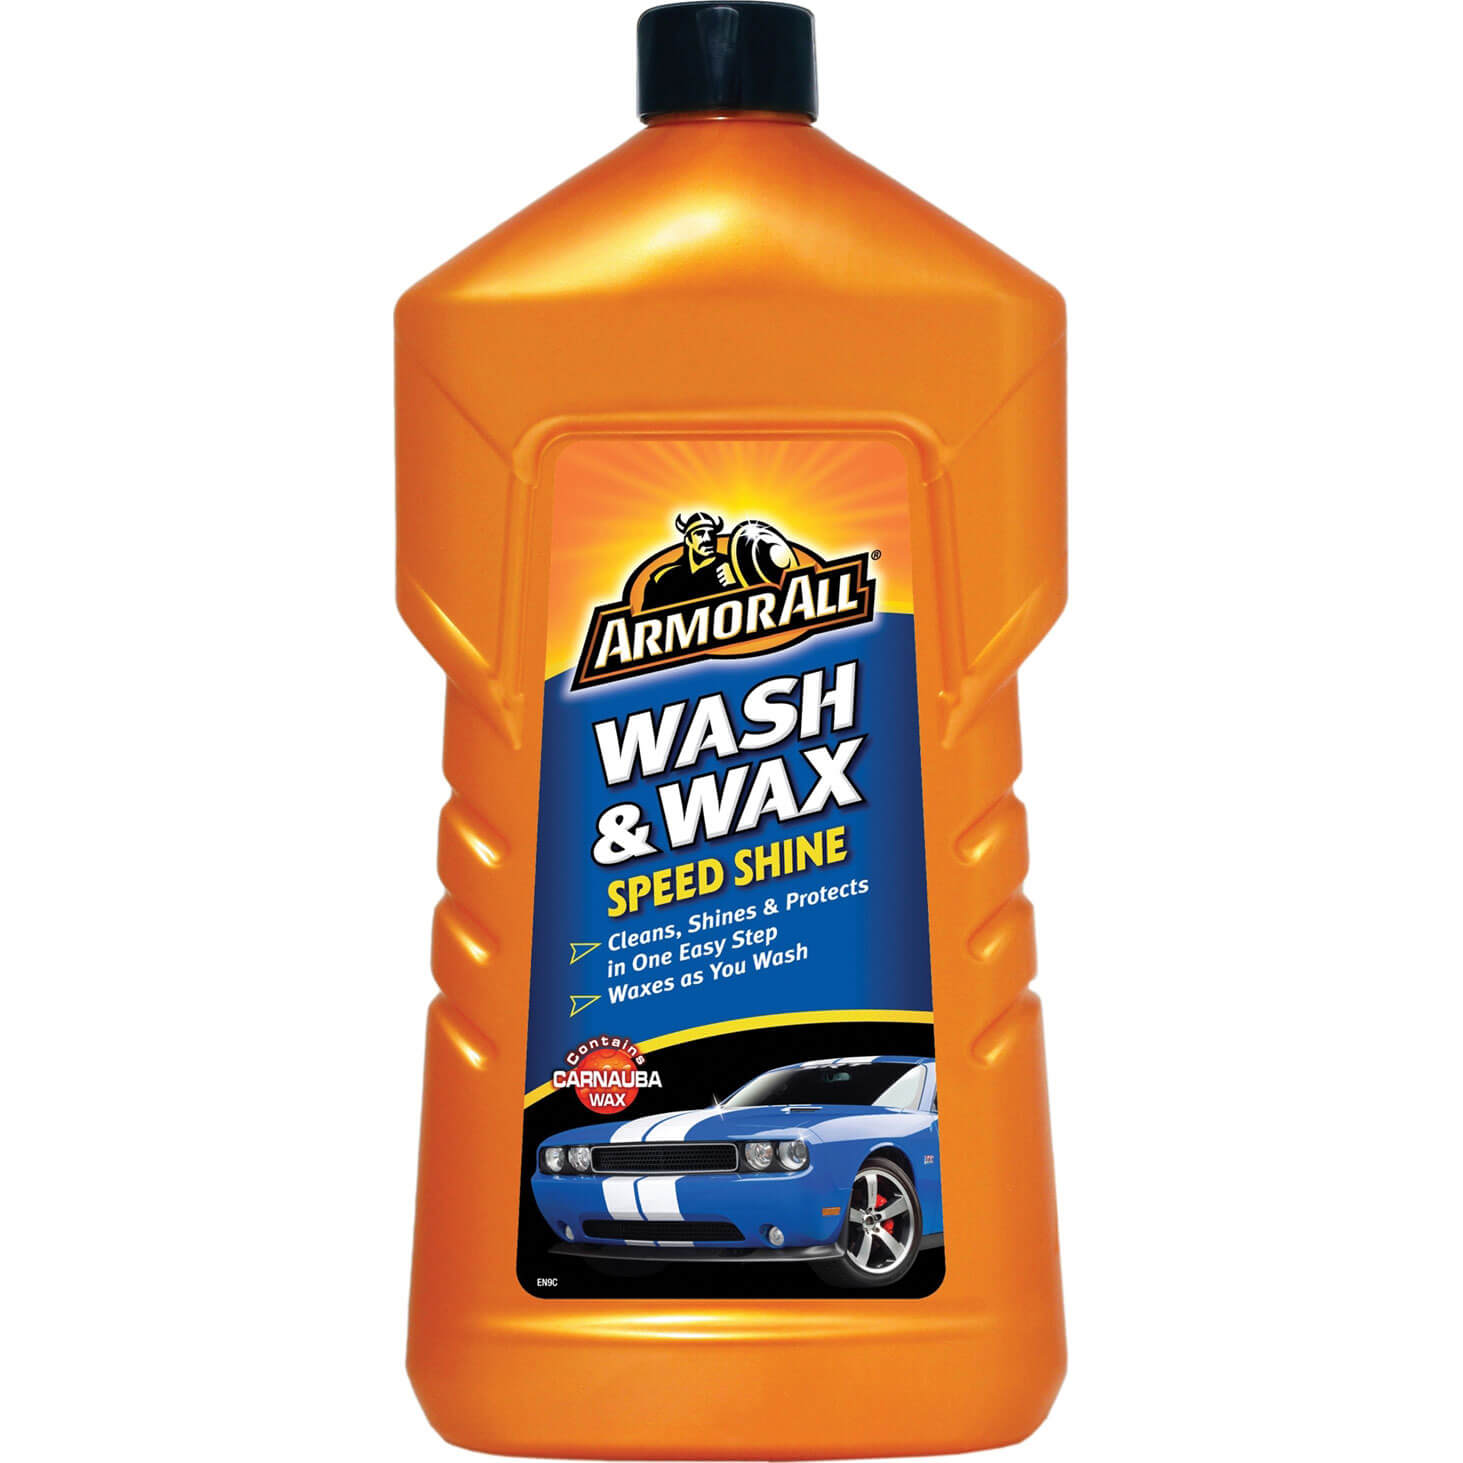 Armorall Wash & Wax 1Ltr